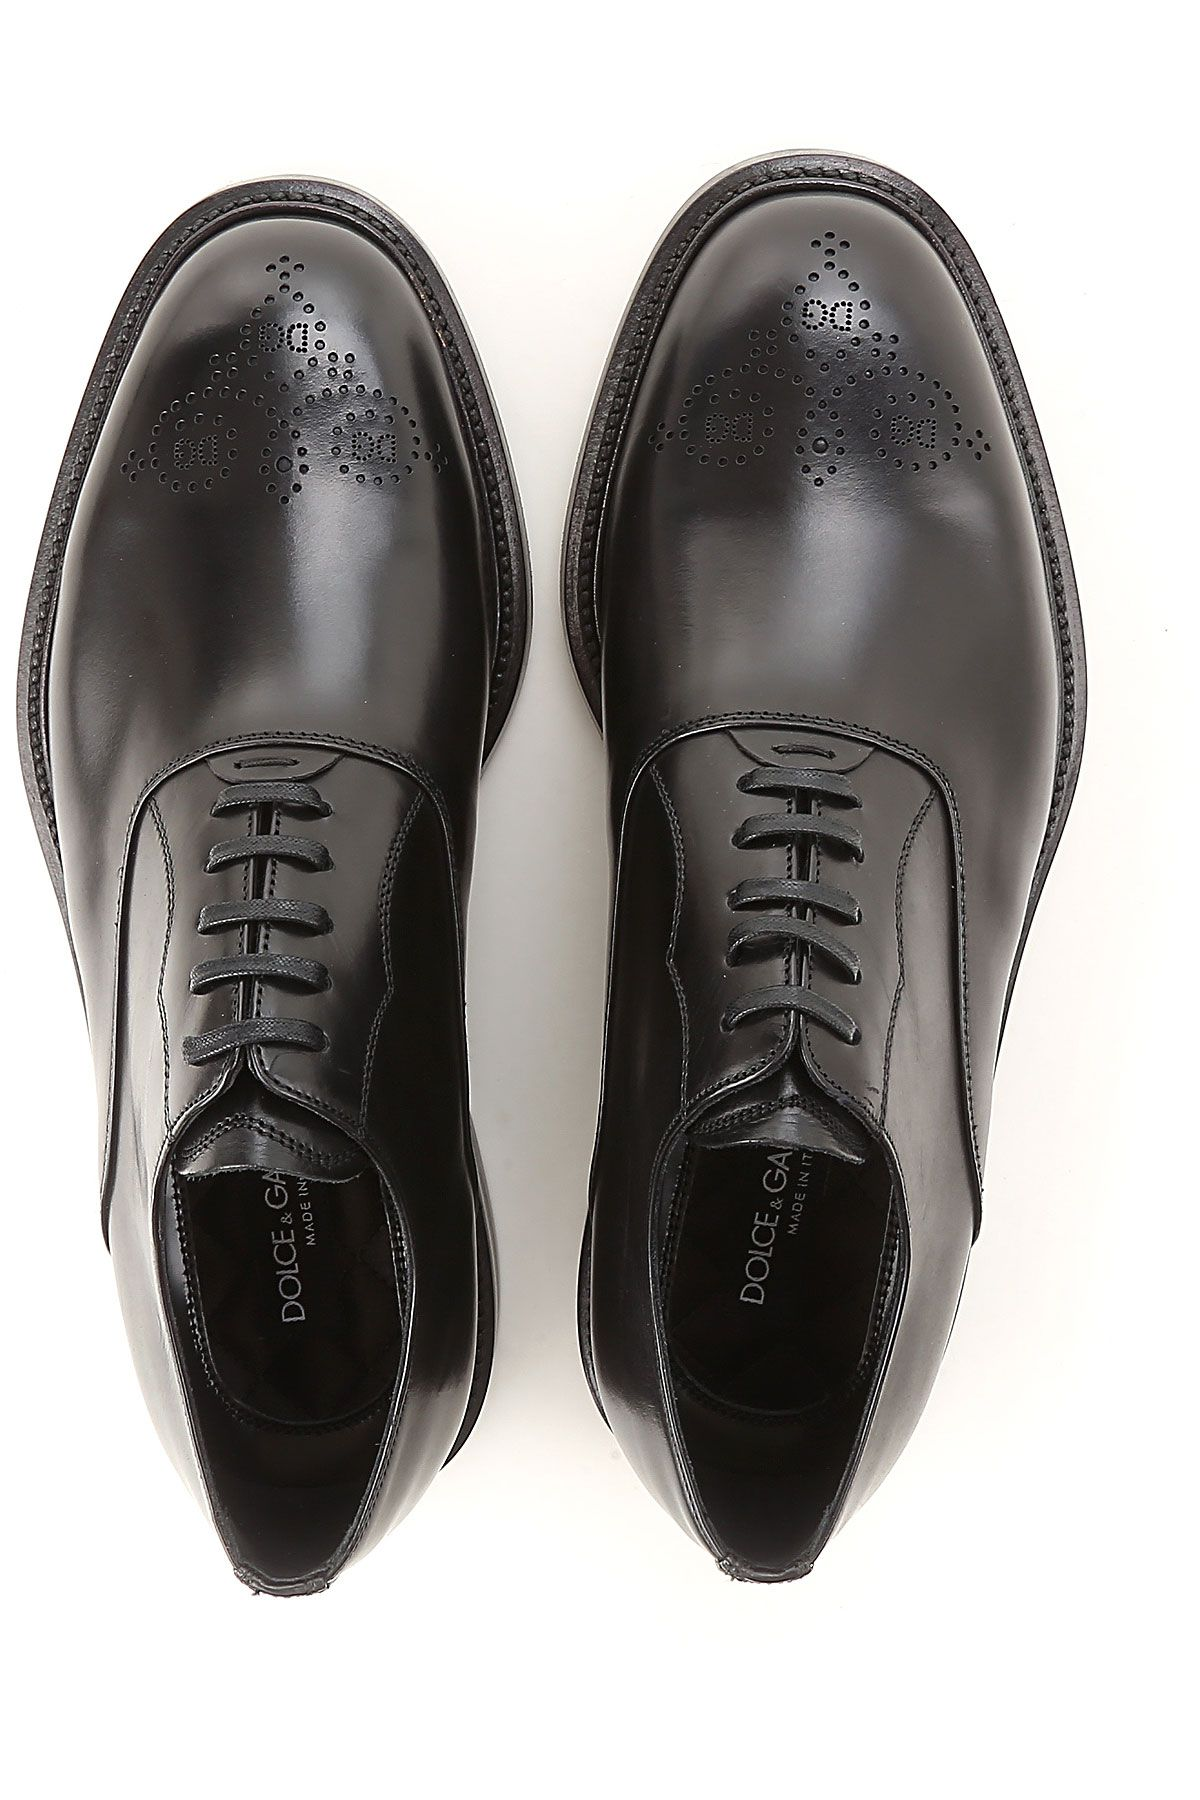 df0958d18e3 Mens Shoes Dolce & Gabbana, Style code: a20085-ac329-80999 | Madison ...